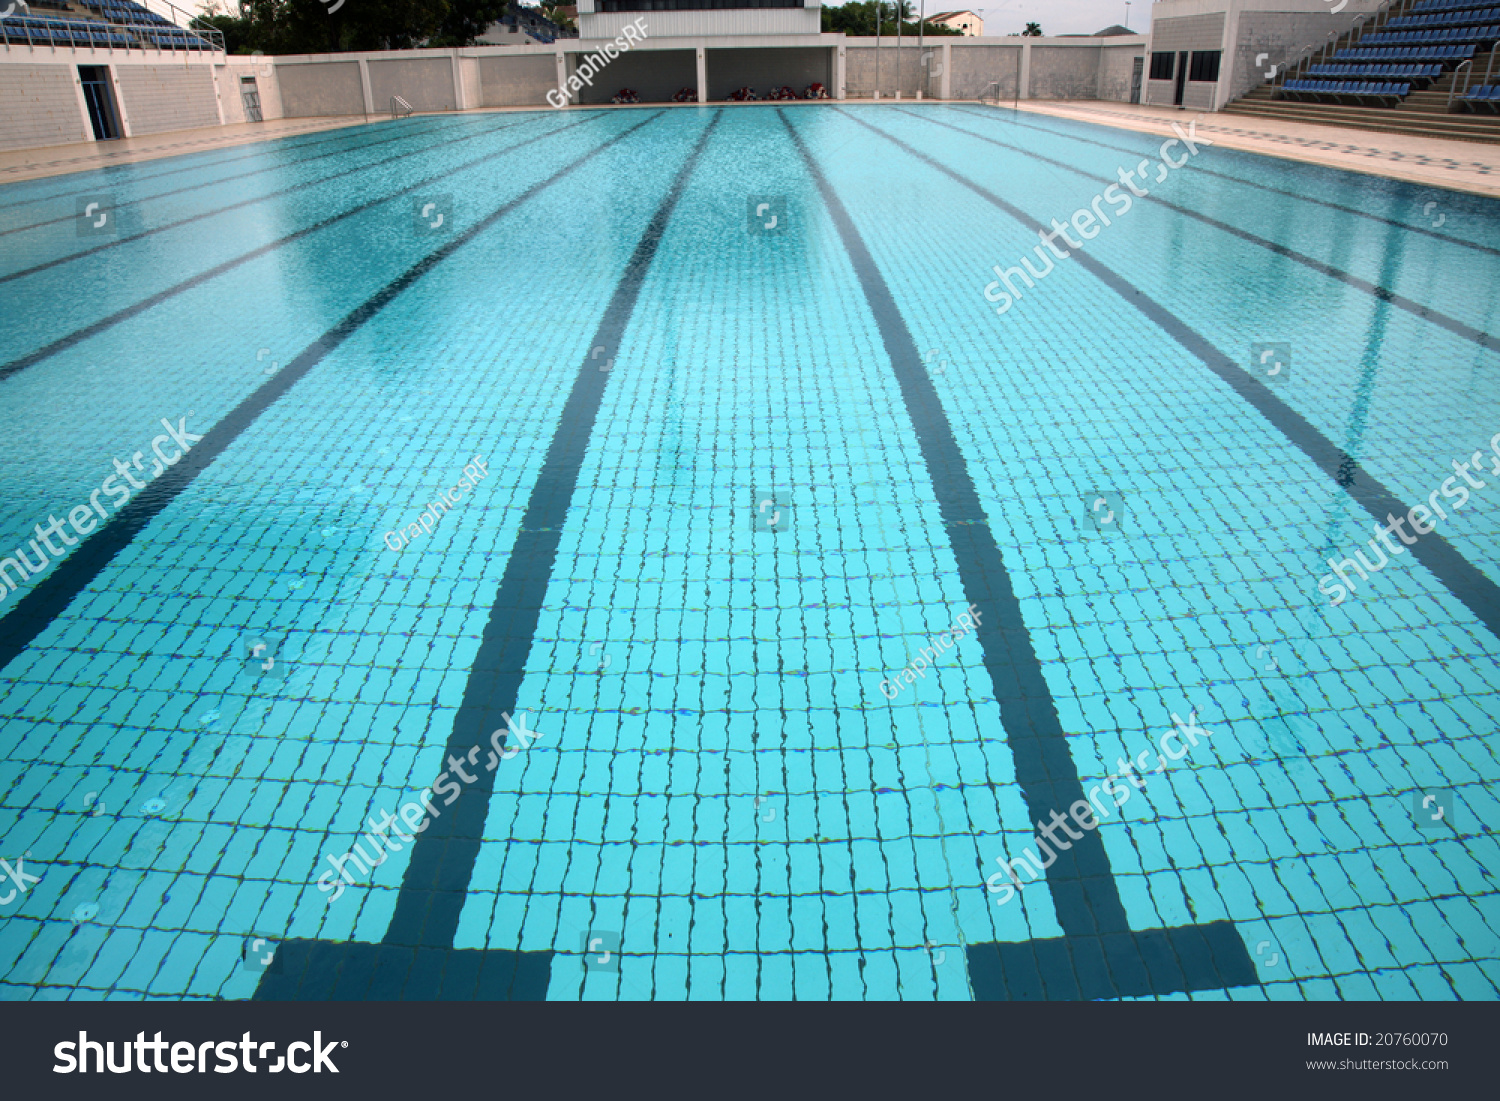 swimming pool with lane markings olympic size